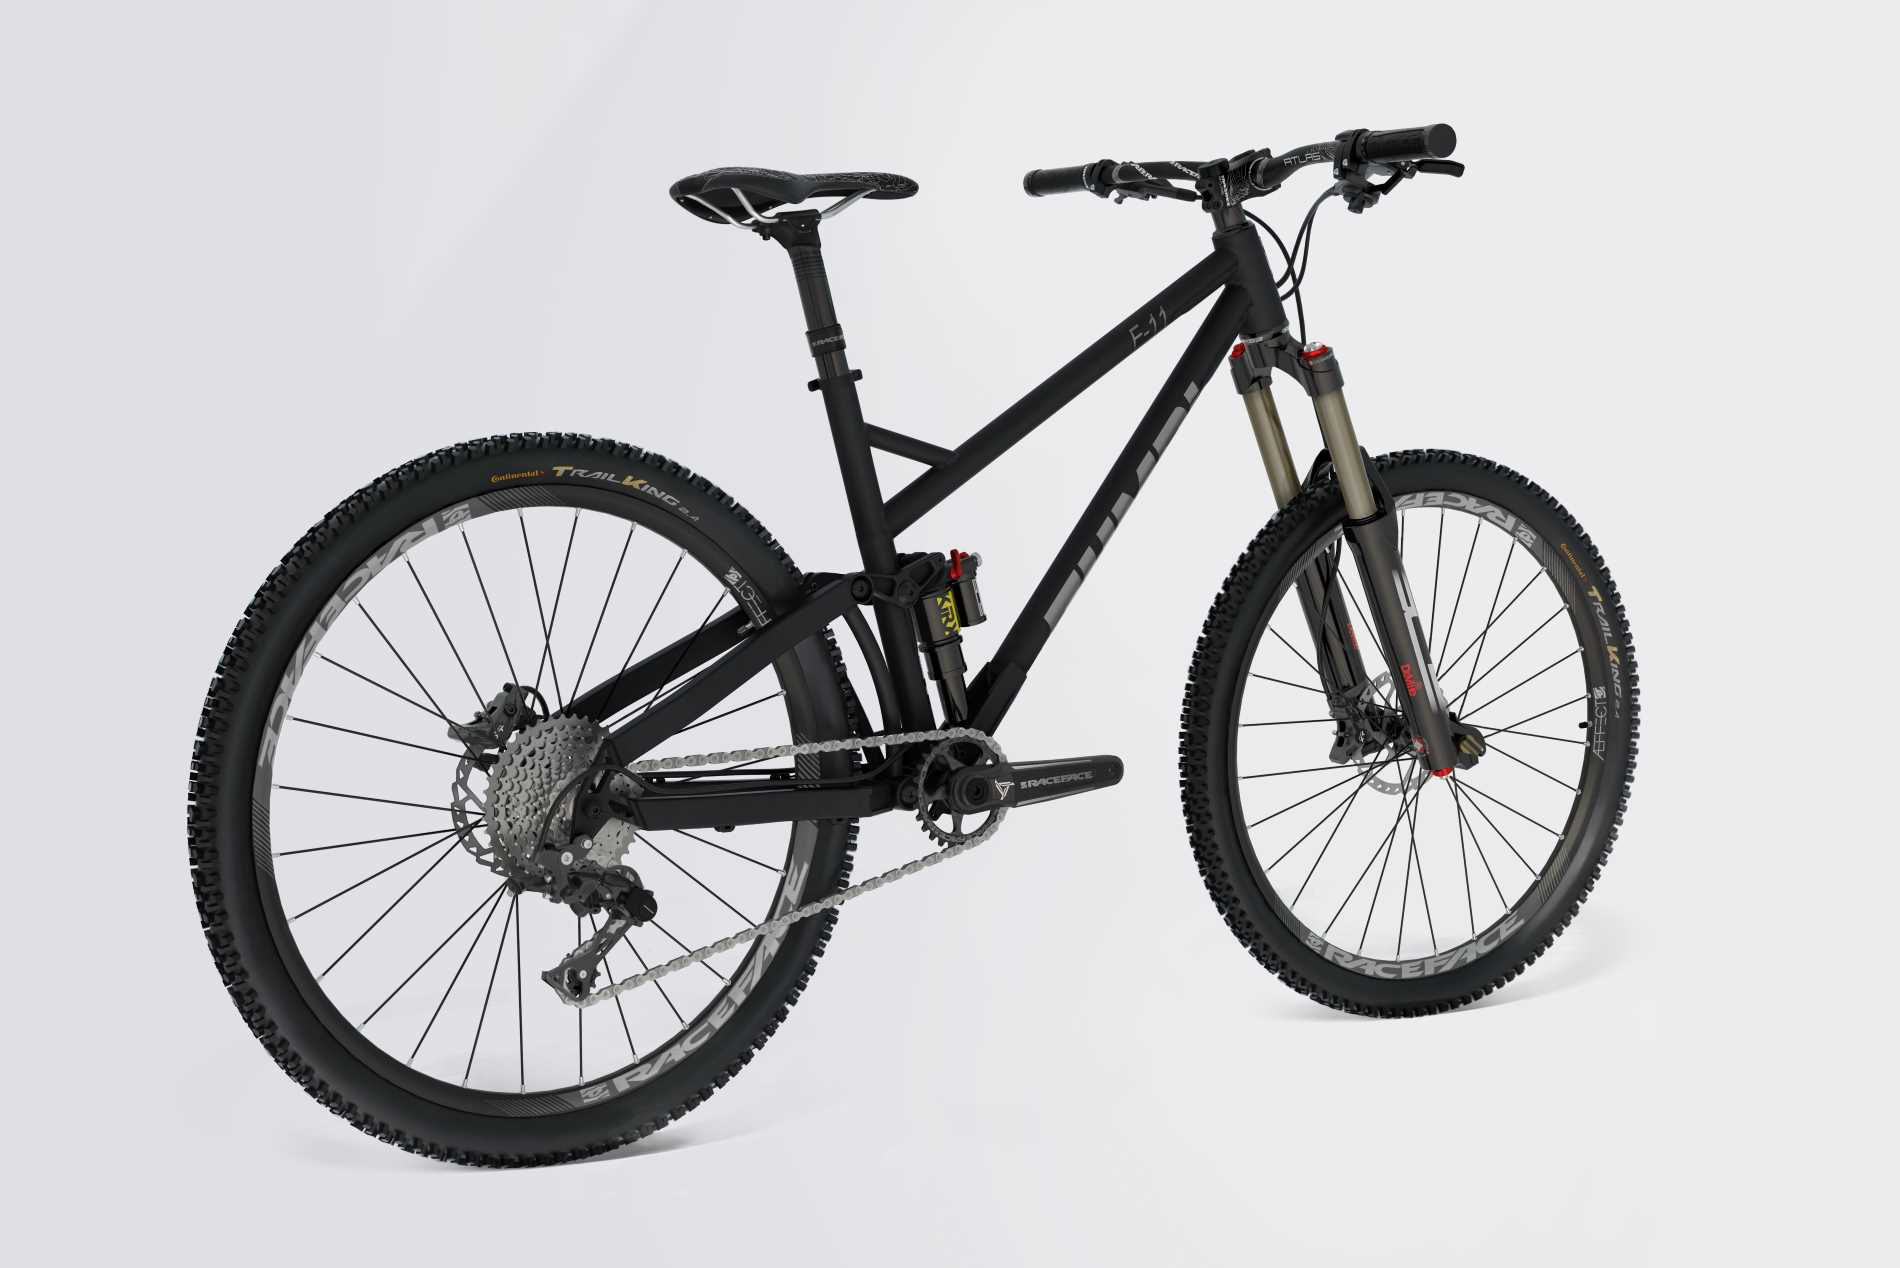 F11 zumbi cycles uk 2